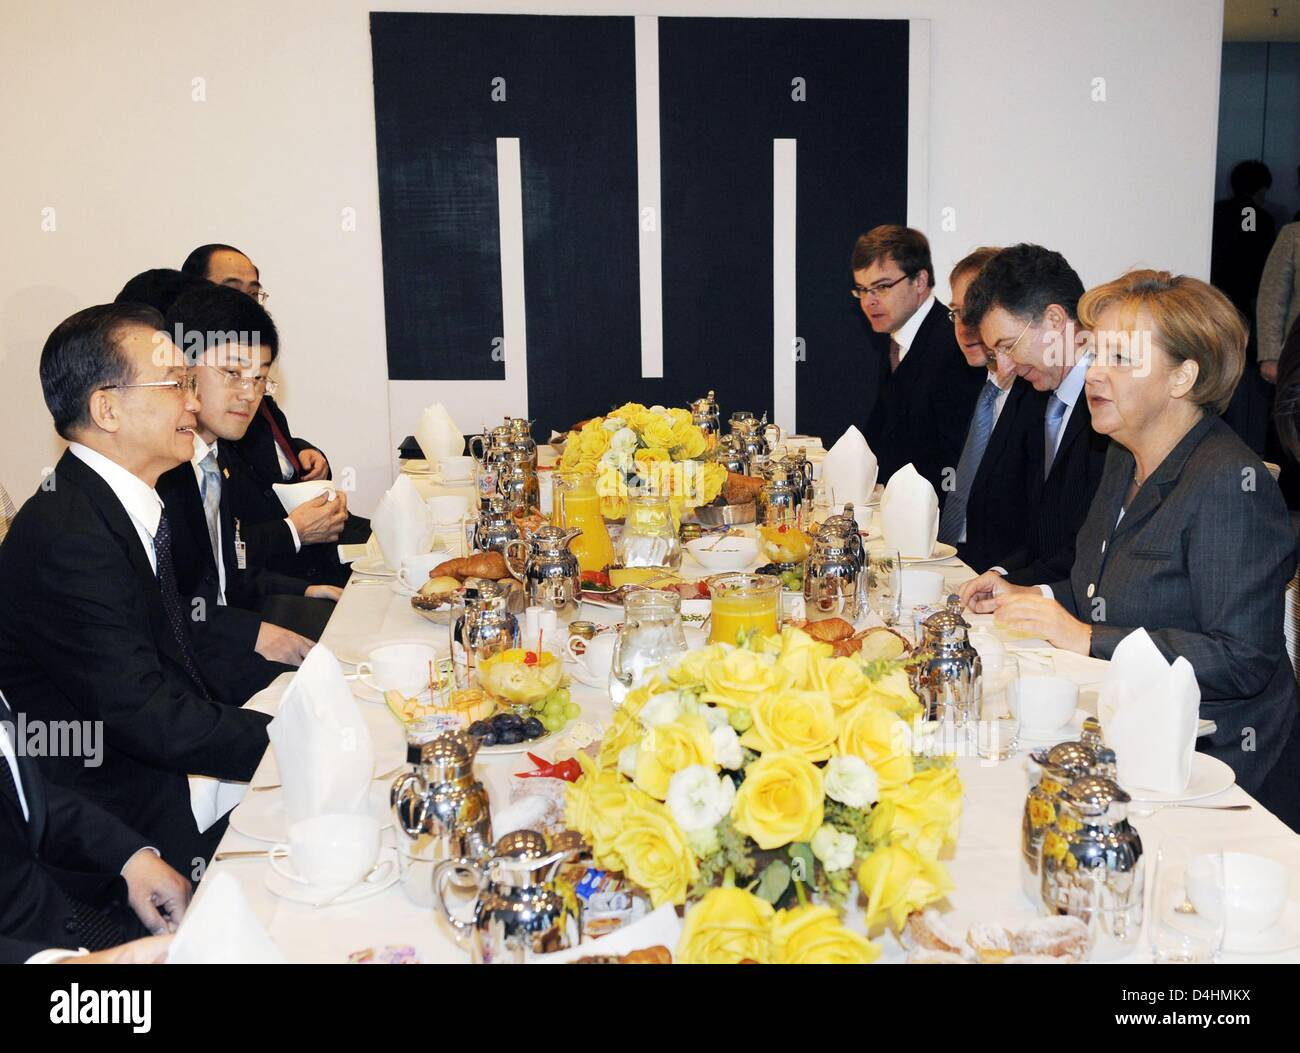 German Chancellor Angela Merkel and her staff talk with Chinese Prime Minister Wen Jiabao and his team during a - Stock Image